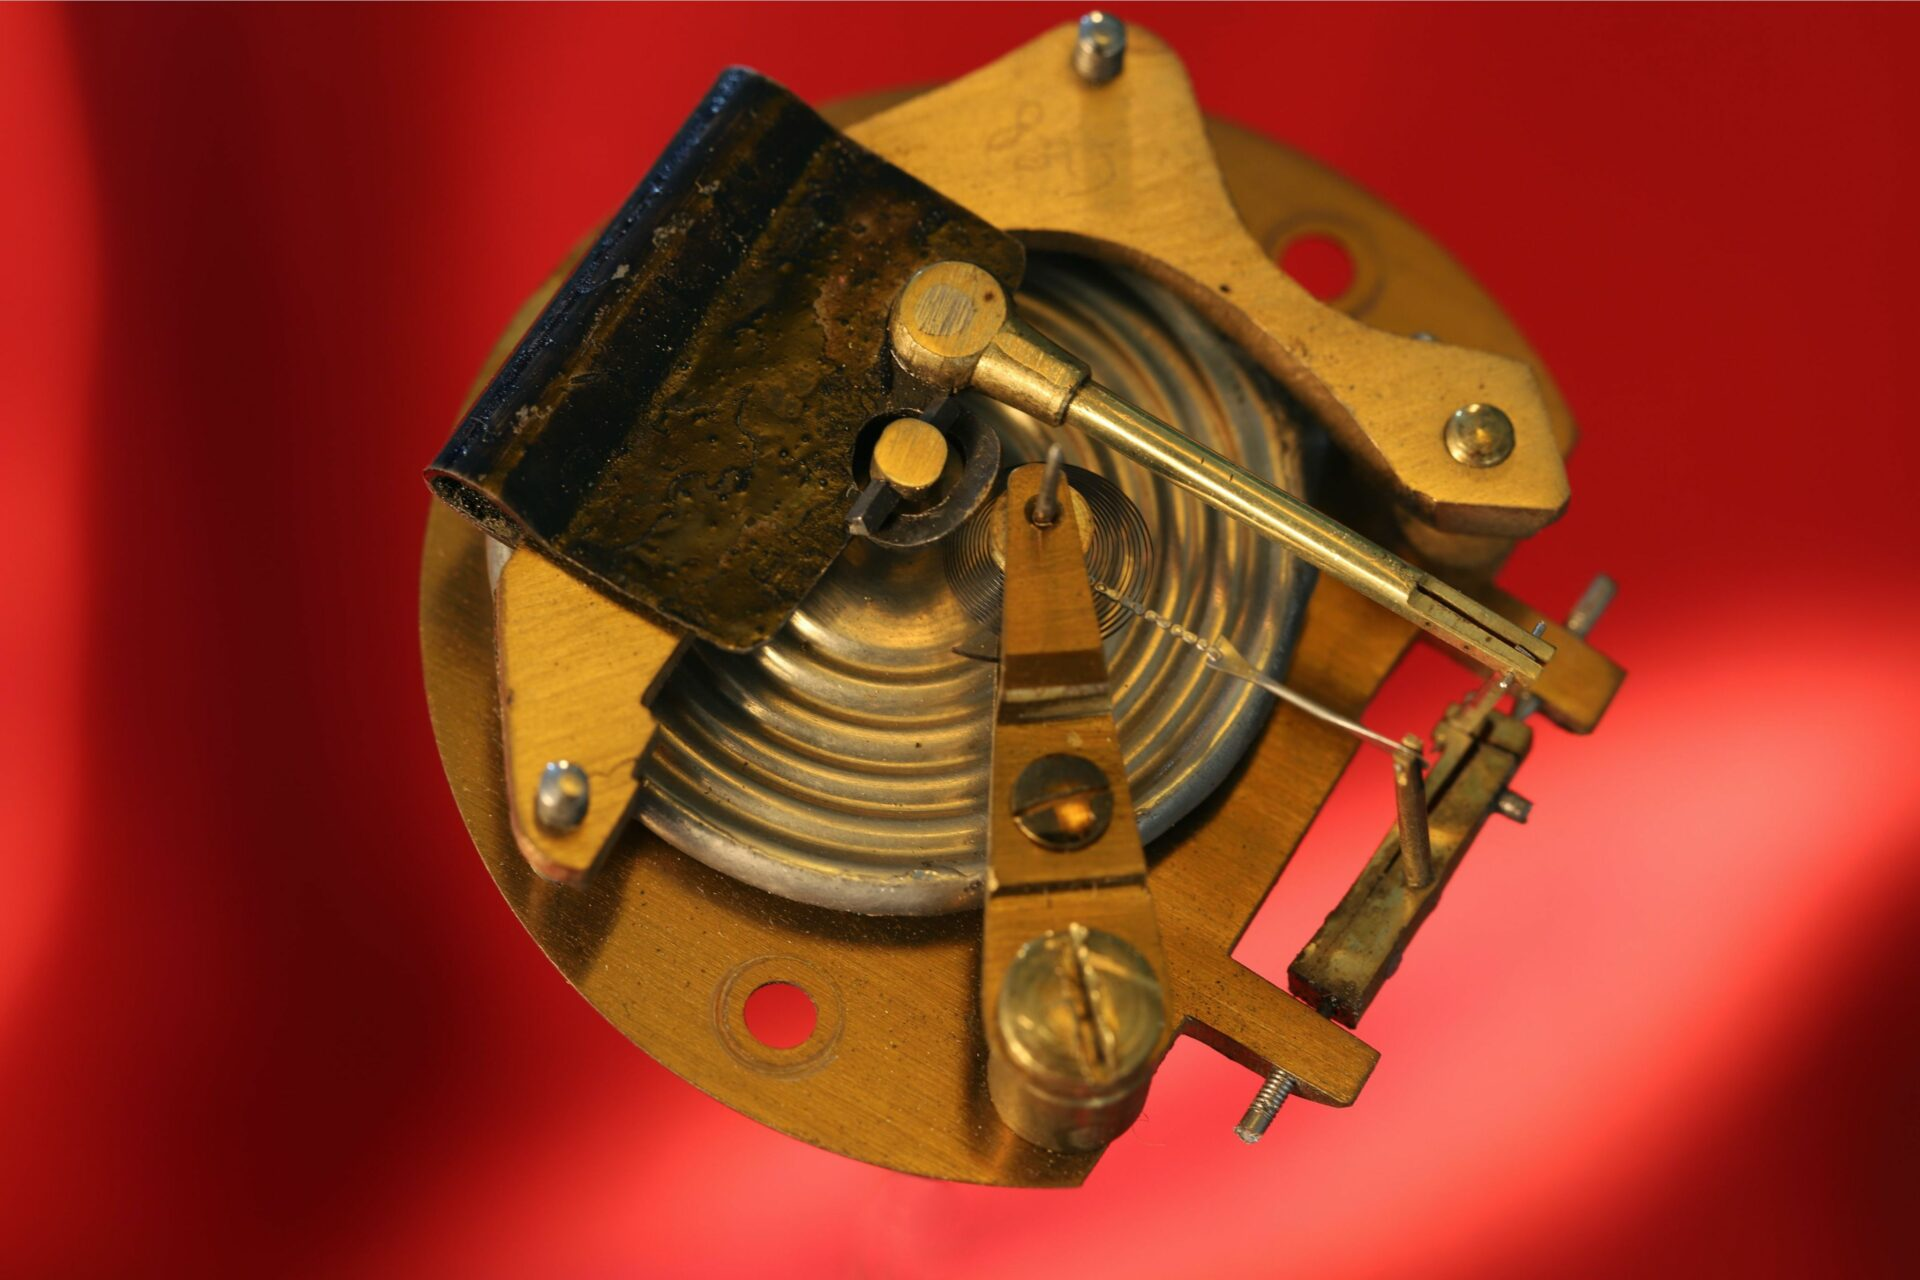 Close up of Negretti & Zambra movement from Clark Silver Pocket Barometer Thermometer Compass Compendium c1888